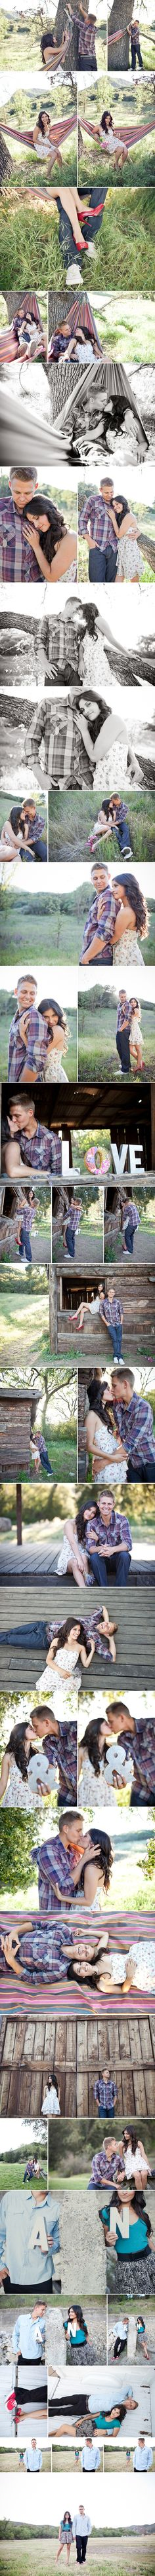 poses for couple